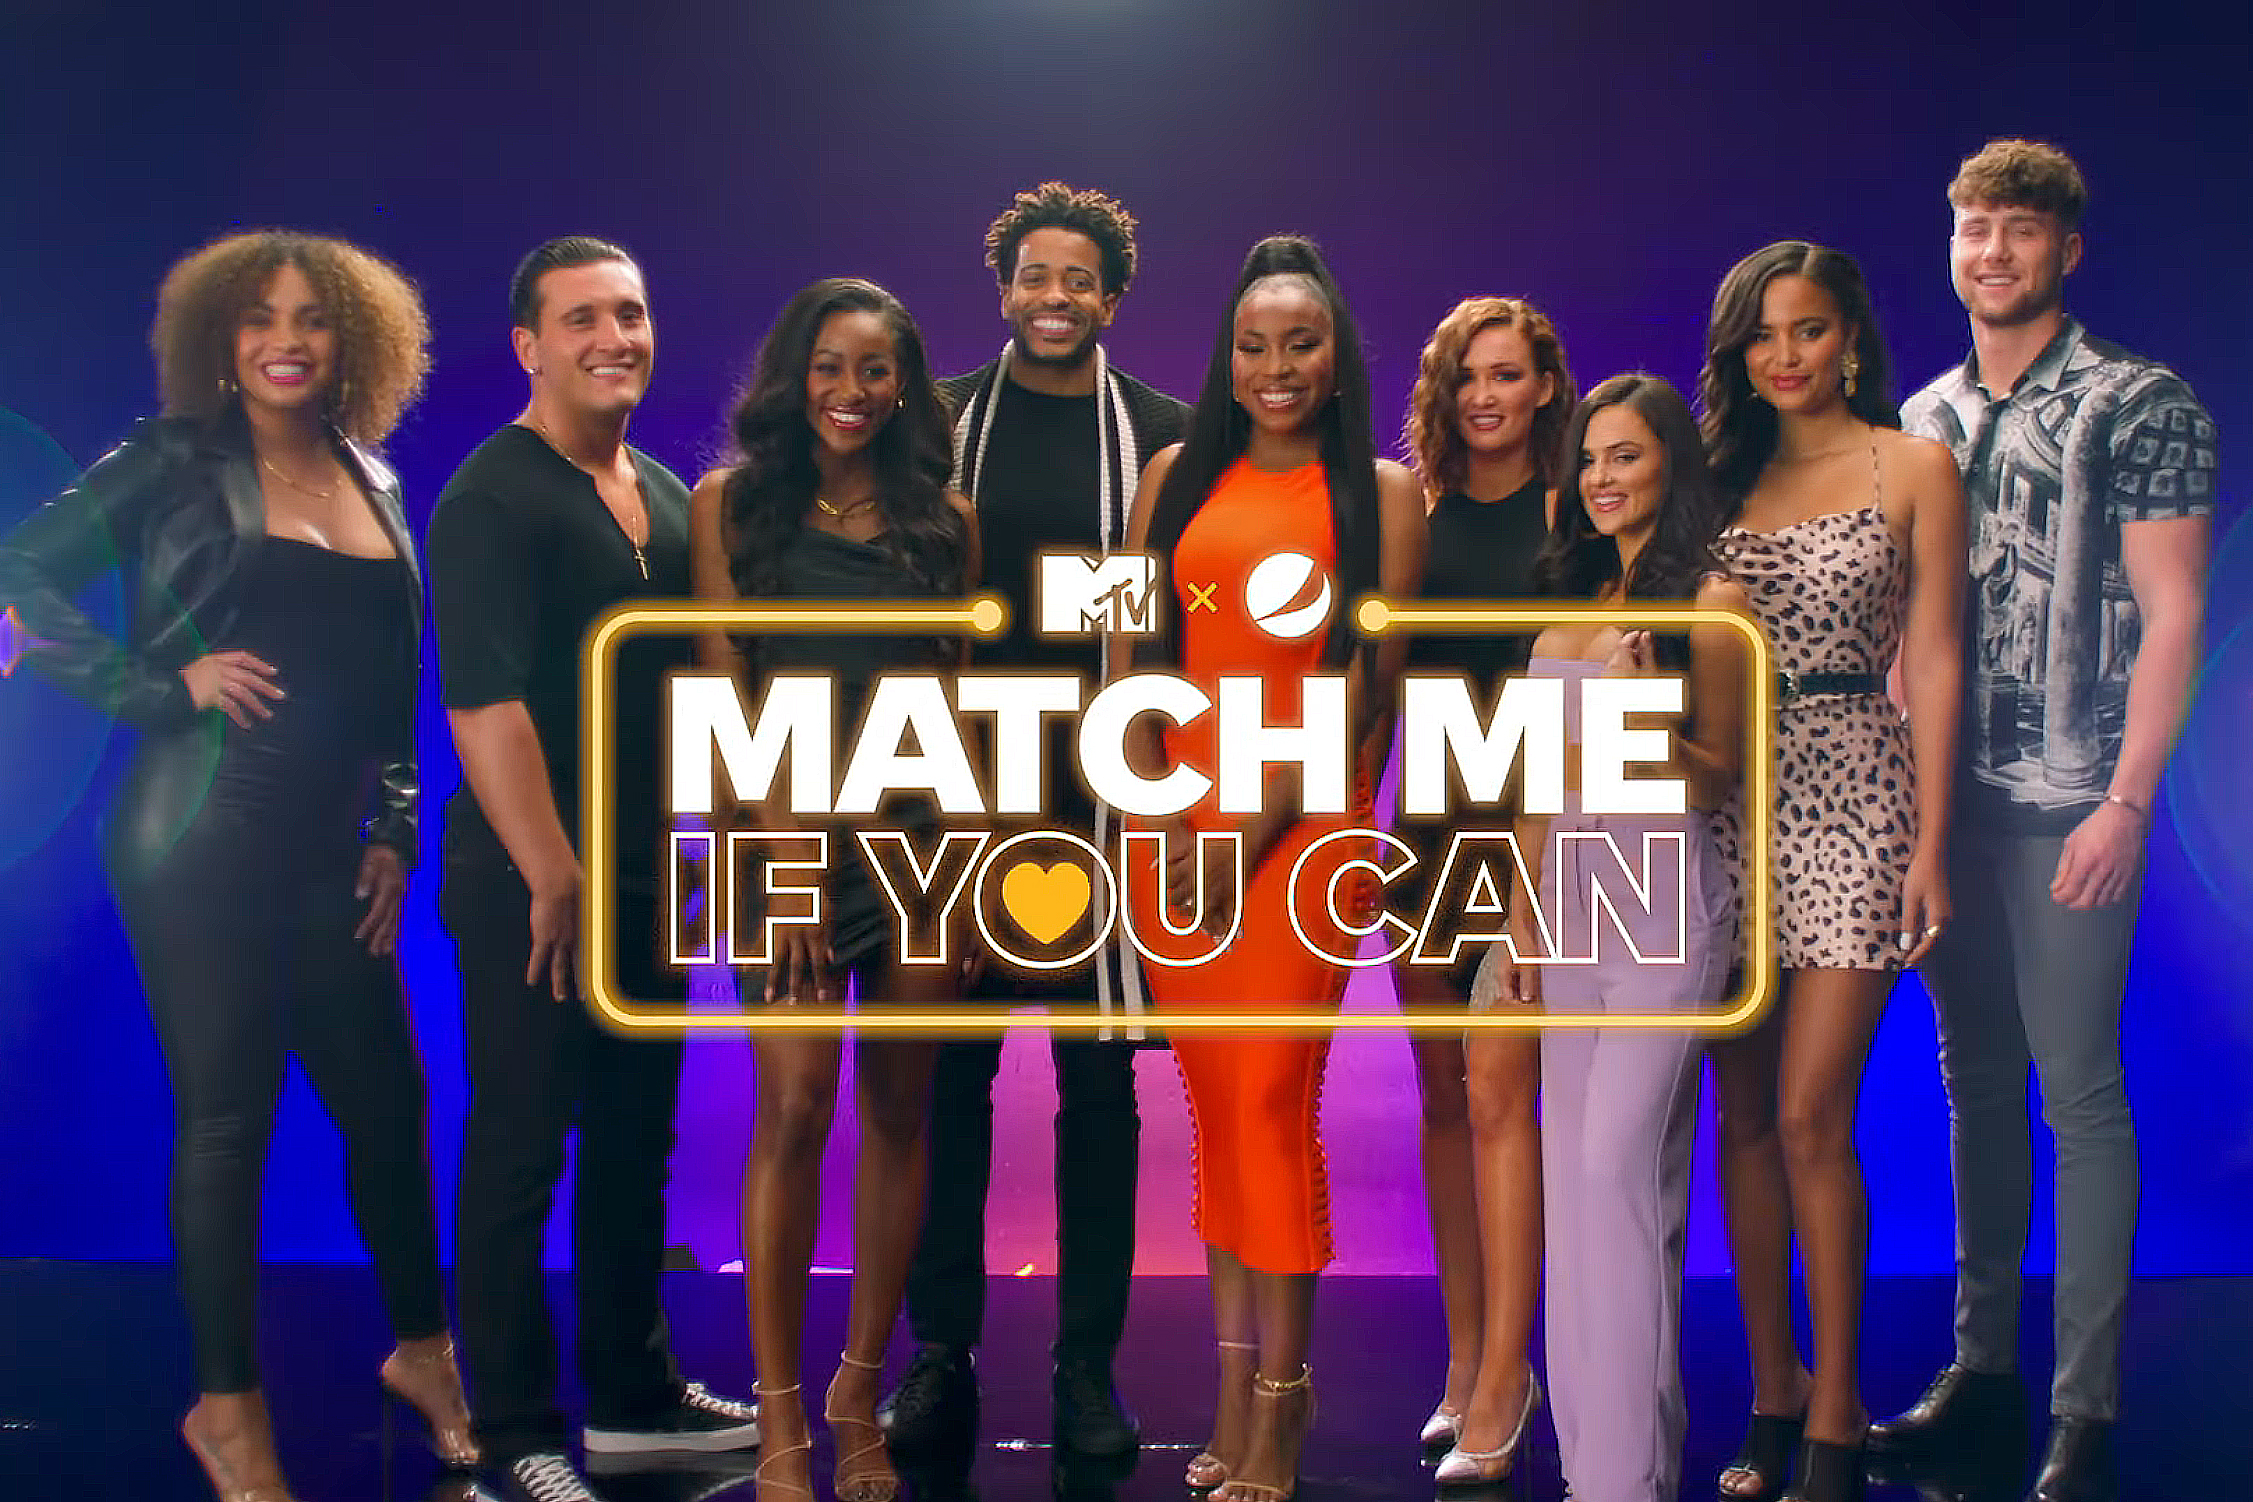 PepsiCo to debut new reality dating show during MTV commercial breaks